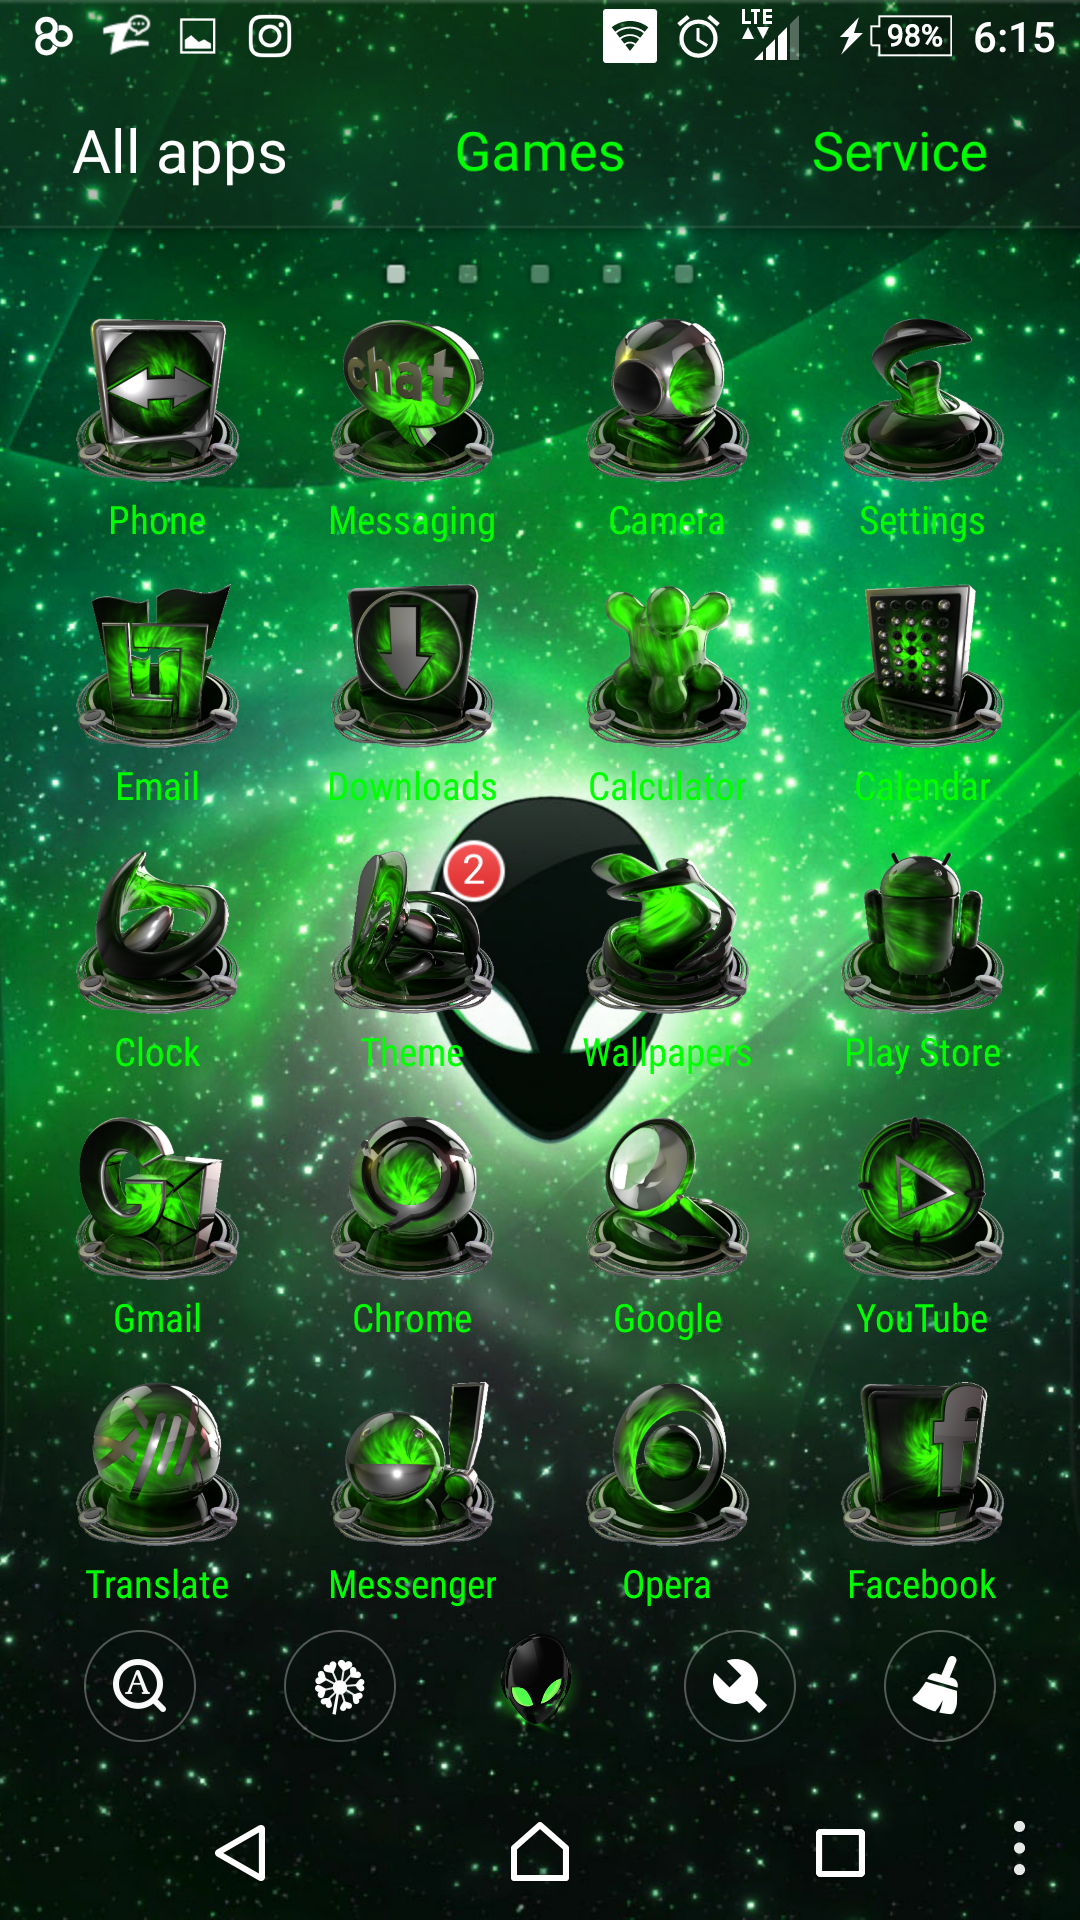 Green gmail theme -  Alienware Green Themepack For Android By Hs1987